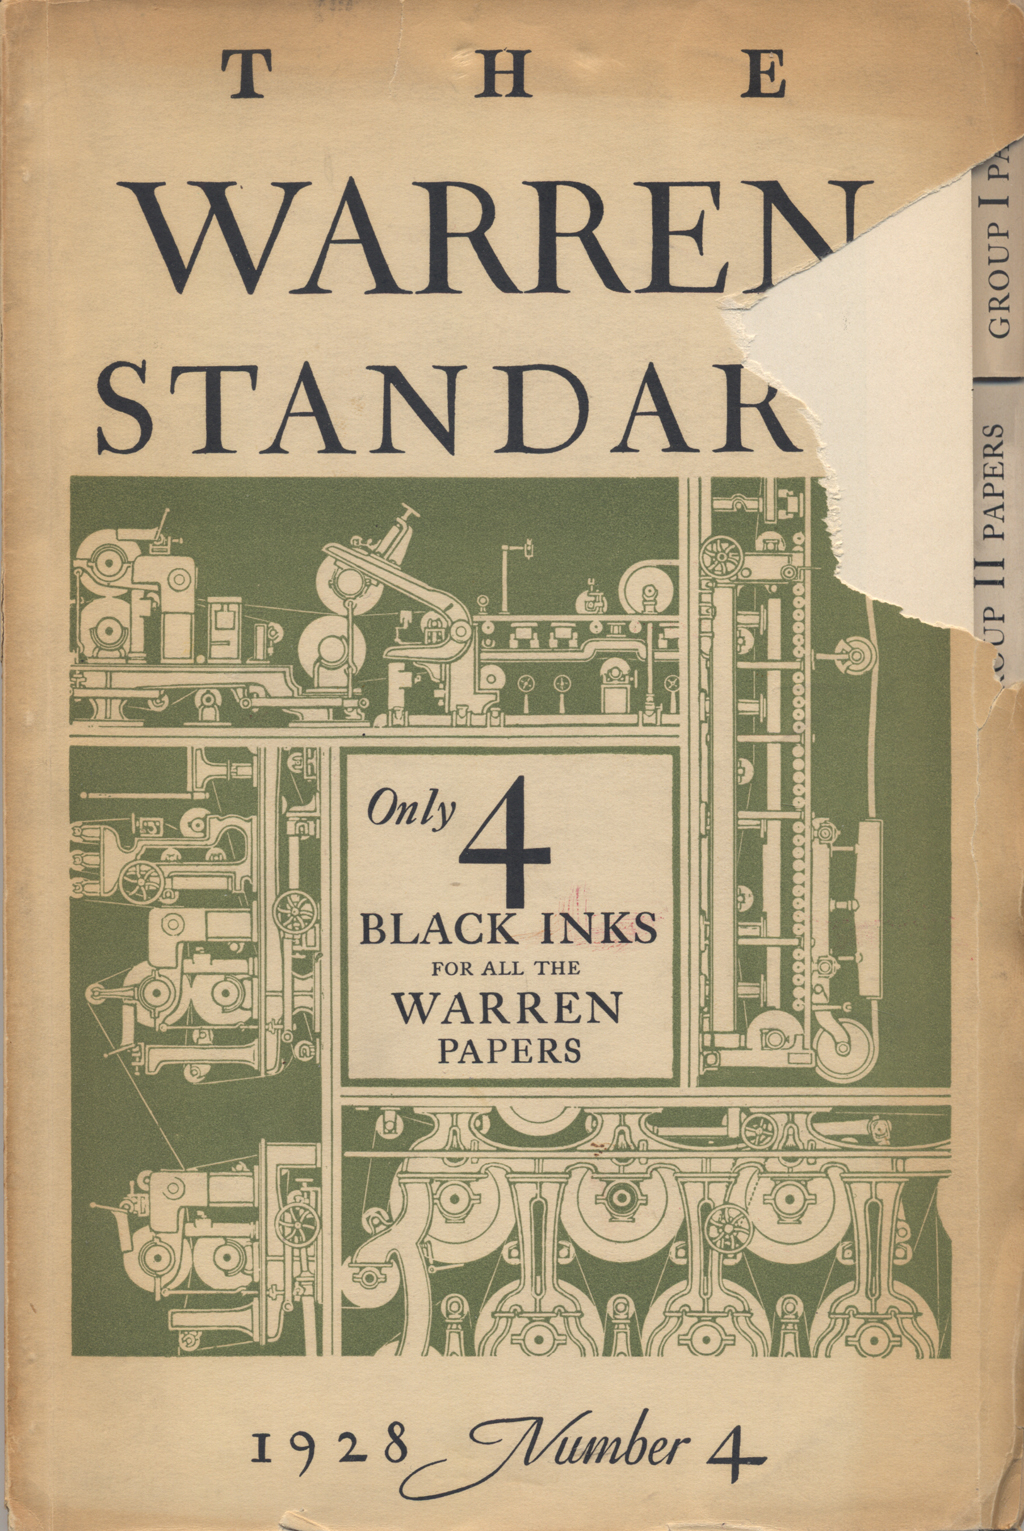 Cover of The Warren Standard no. 4 (1928). Design, illustration and lettering by W.A. Dwiggins.